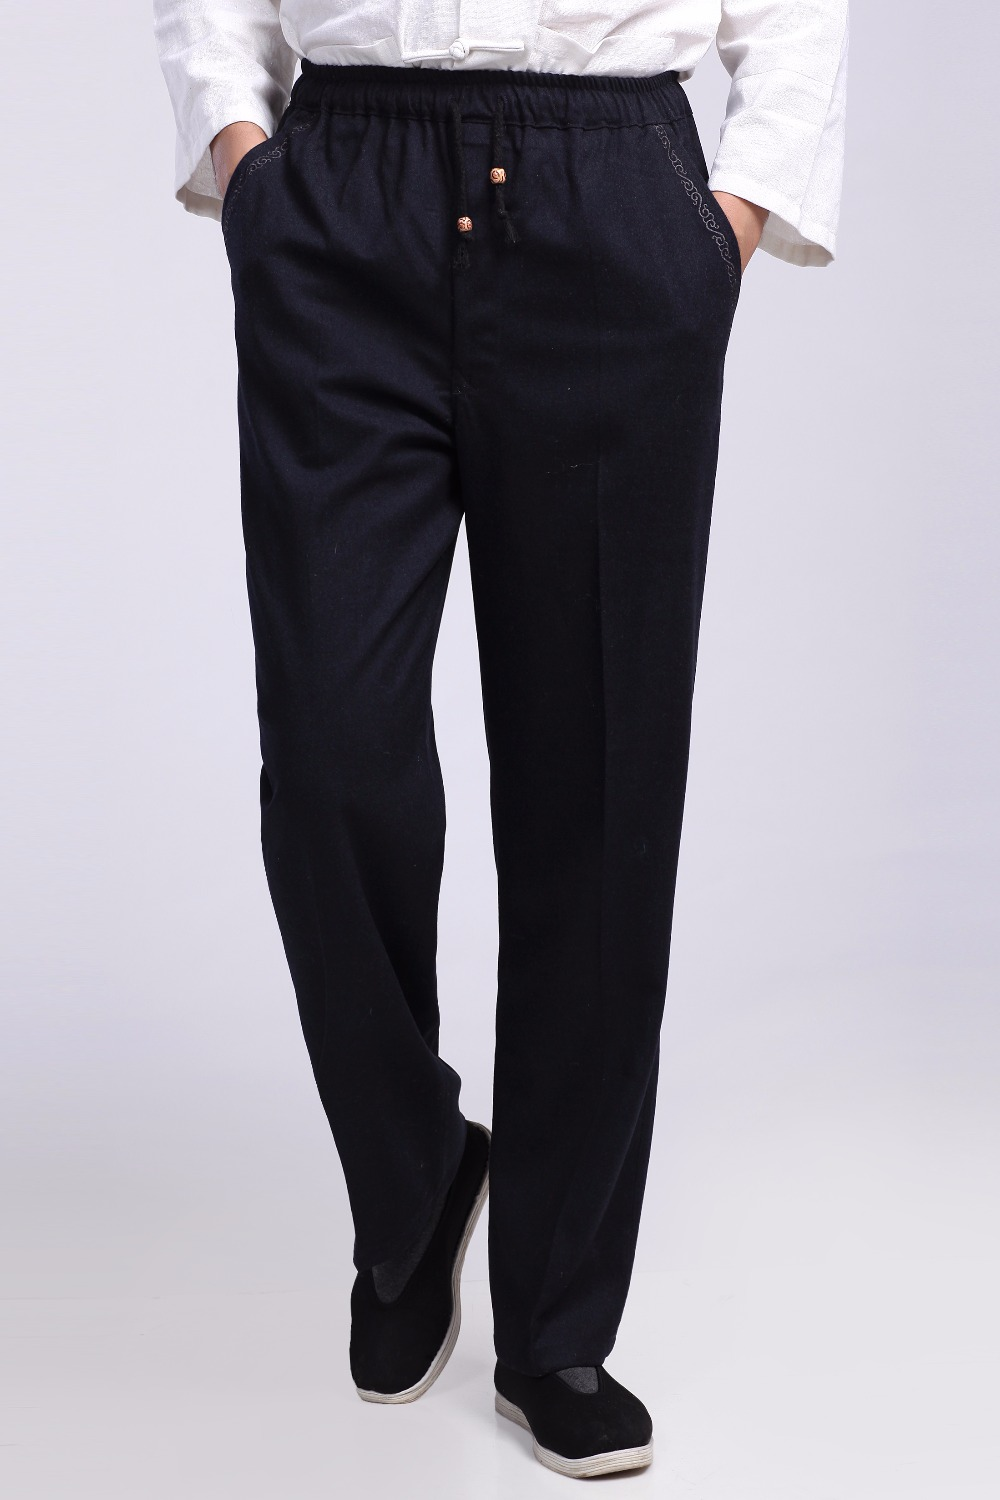 Shanghai Story Men's Cotton Linen Pants Chinese Traditional Wu Shu Trousers Male Kung Fu Pant 3 Color